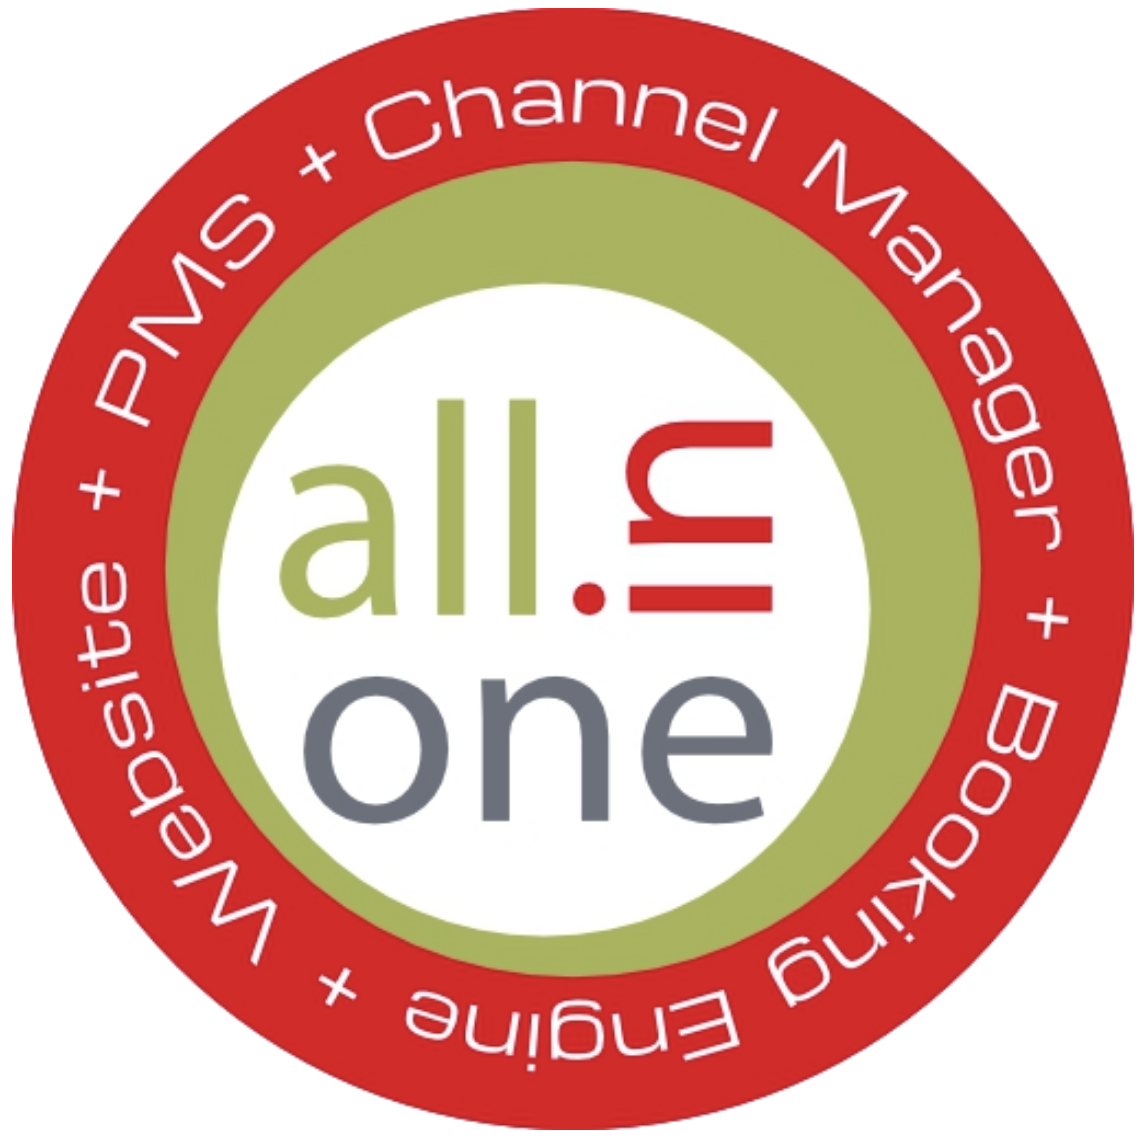 All-in-One-Channelmanager